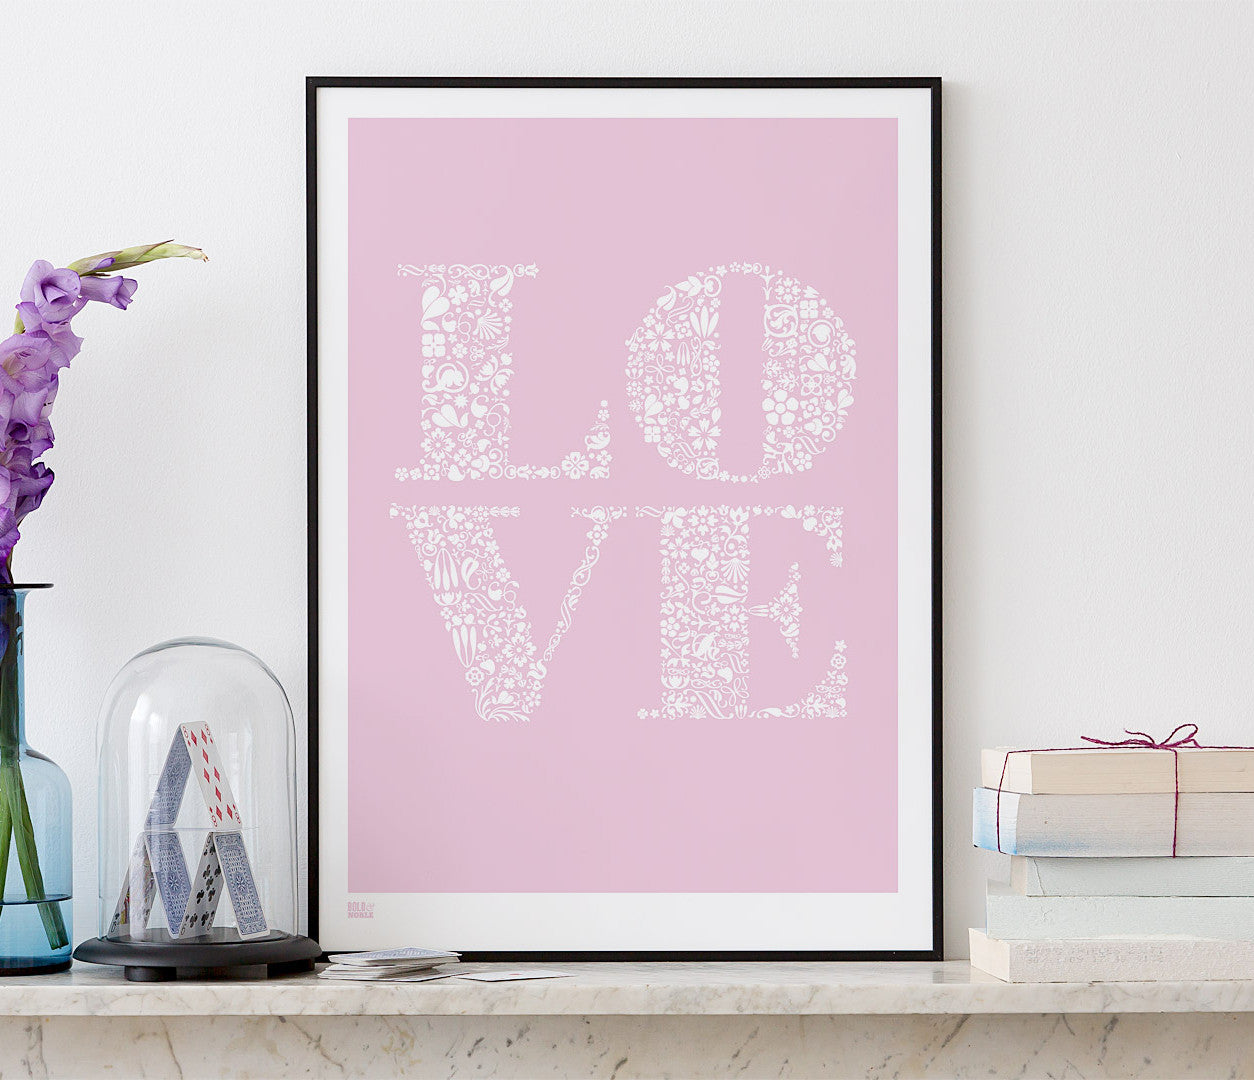 'Love' Art Print in Candy Pink